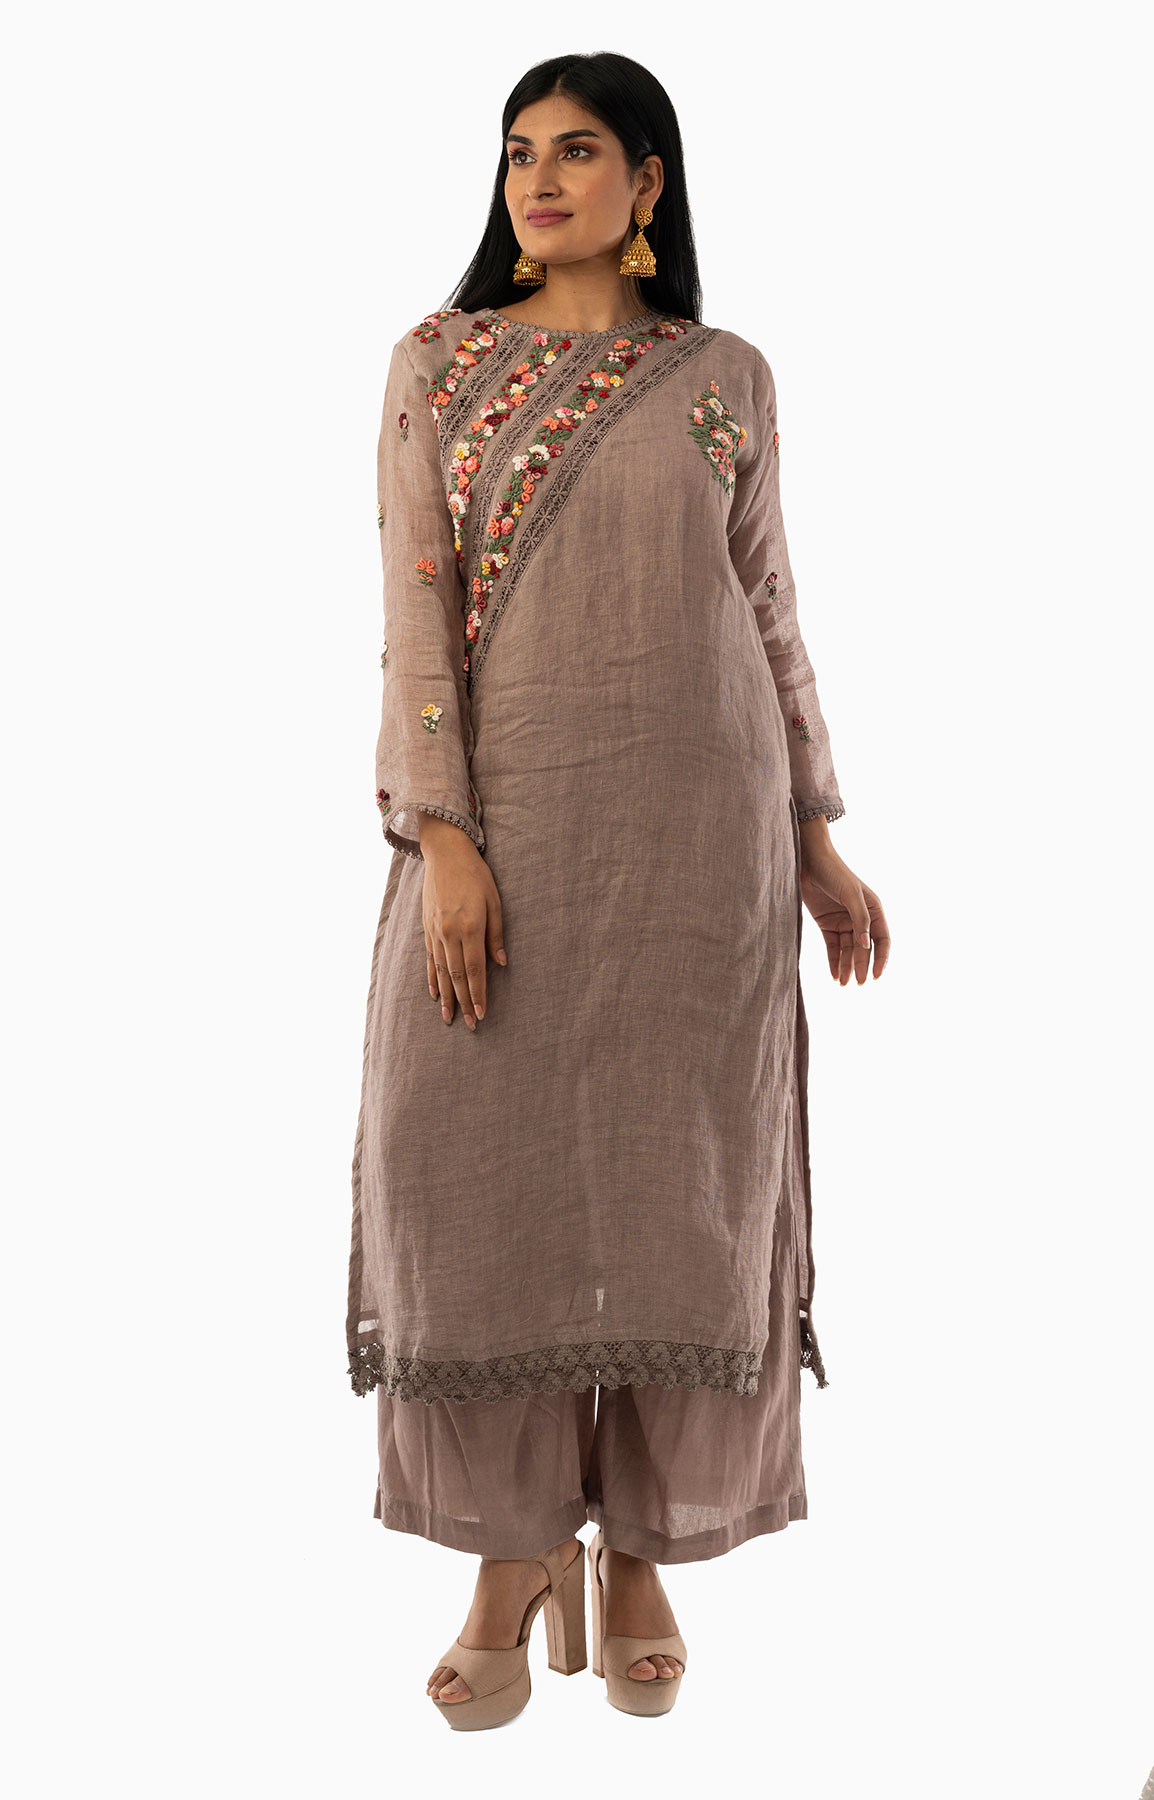 Sand Beige Linen Suit With Handloom Linen Duppatta Adorned With Resham Work – Viraaya By Ushnakmals